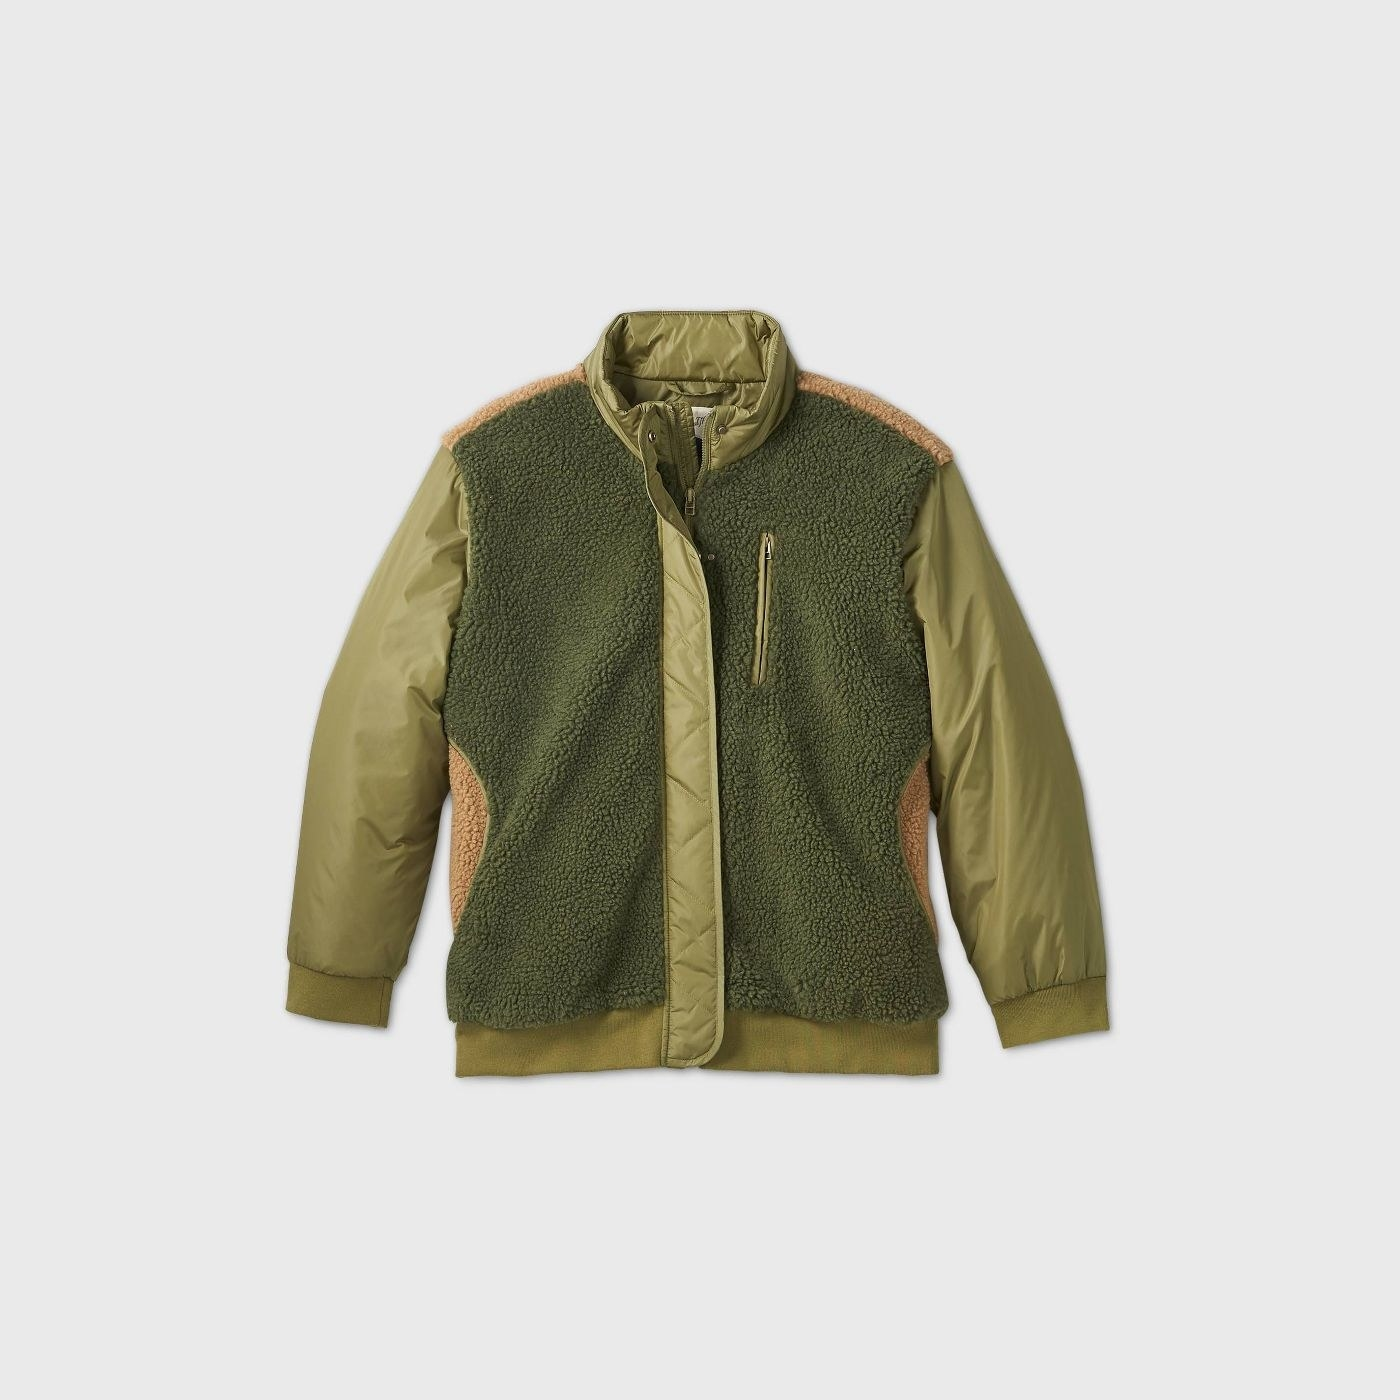 Green jacket with tan details